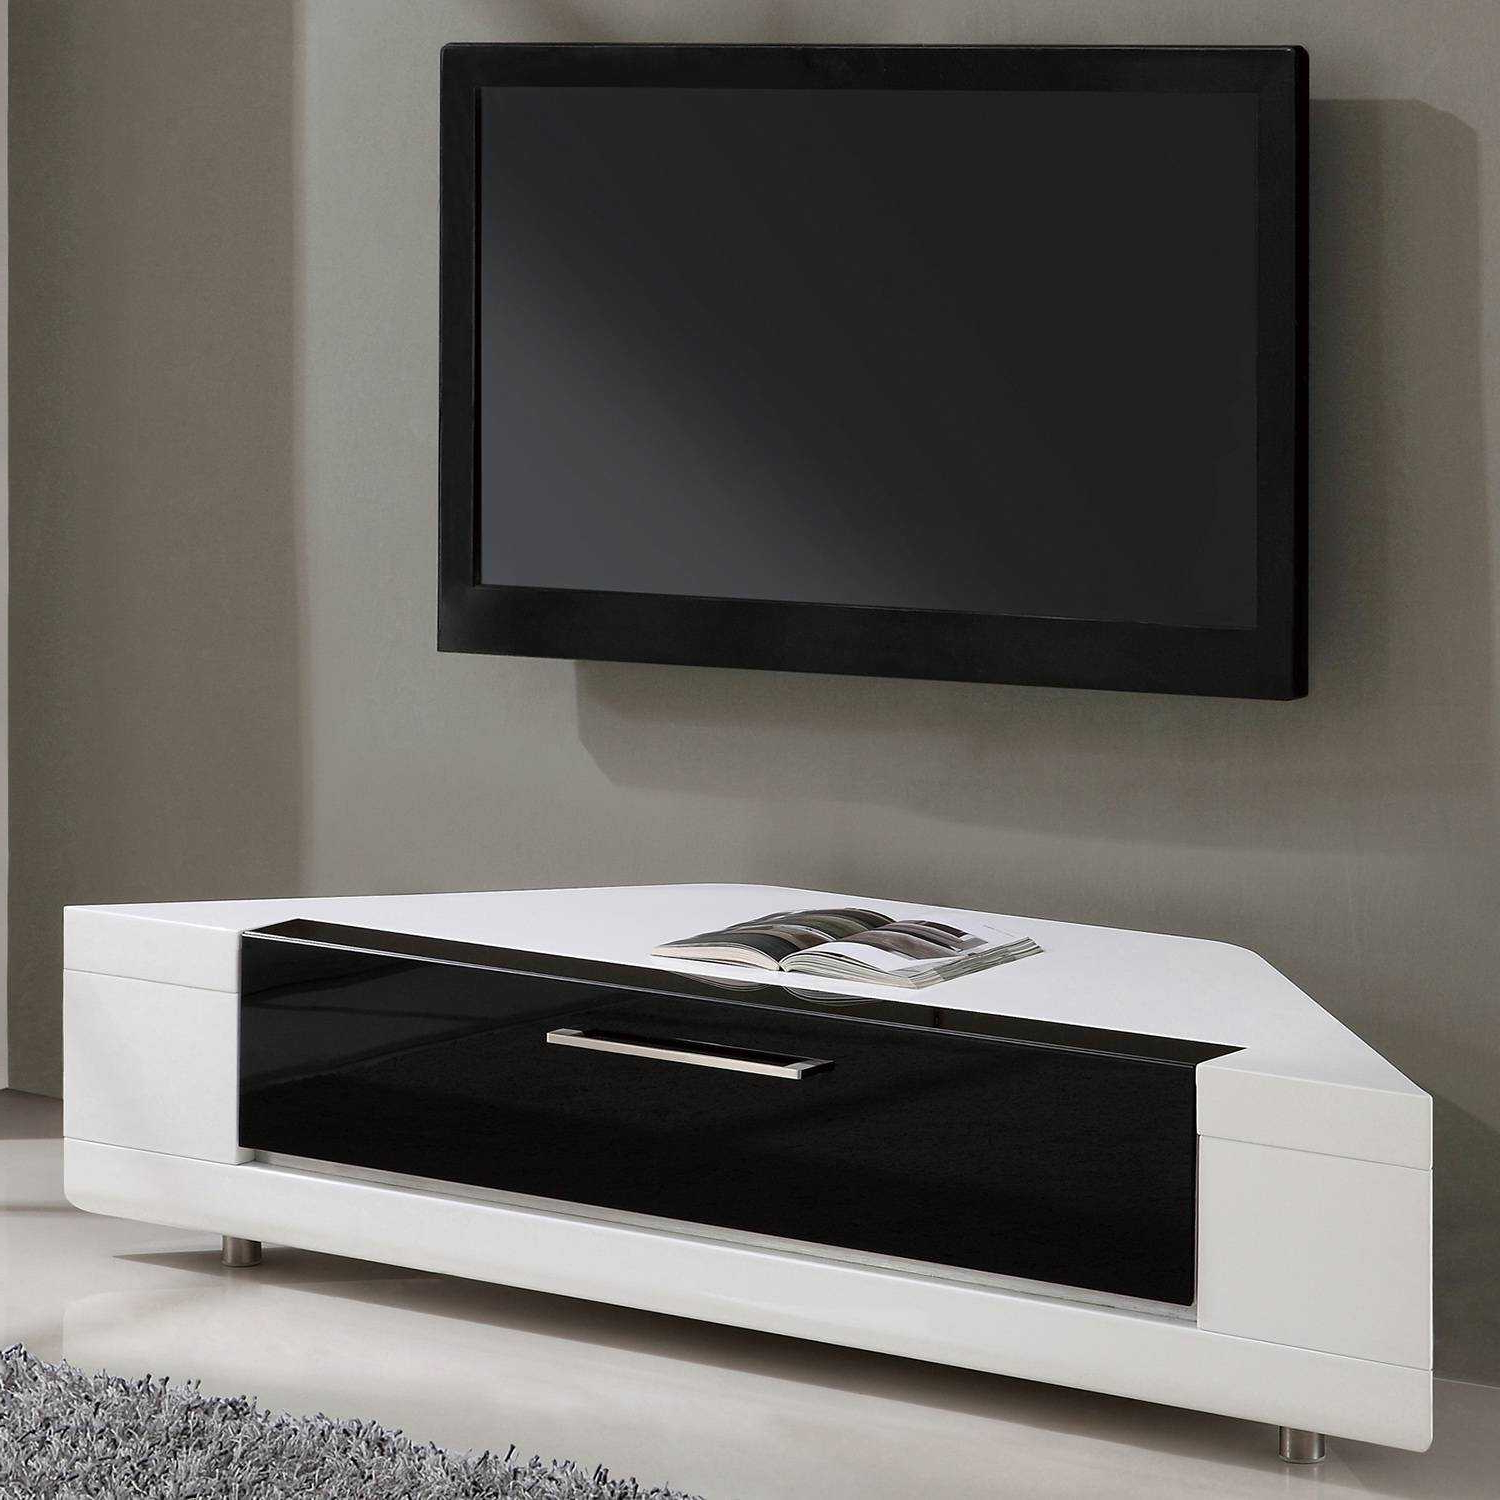 Black Gloss Corner Tv Stand With Regard To 2018 High Corner Tv Stand White Gloss Cabinet Hamilton Highboy 30 Stands (View 6 of 20)